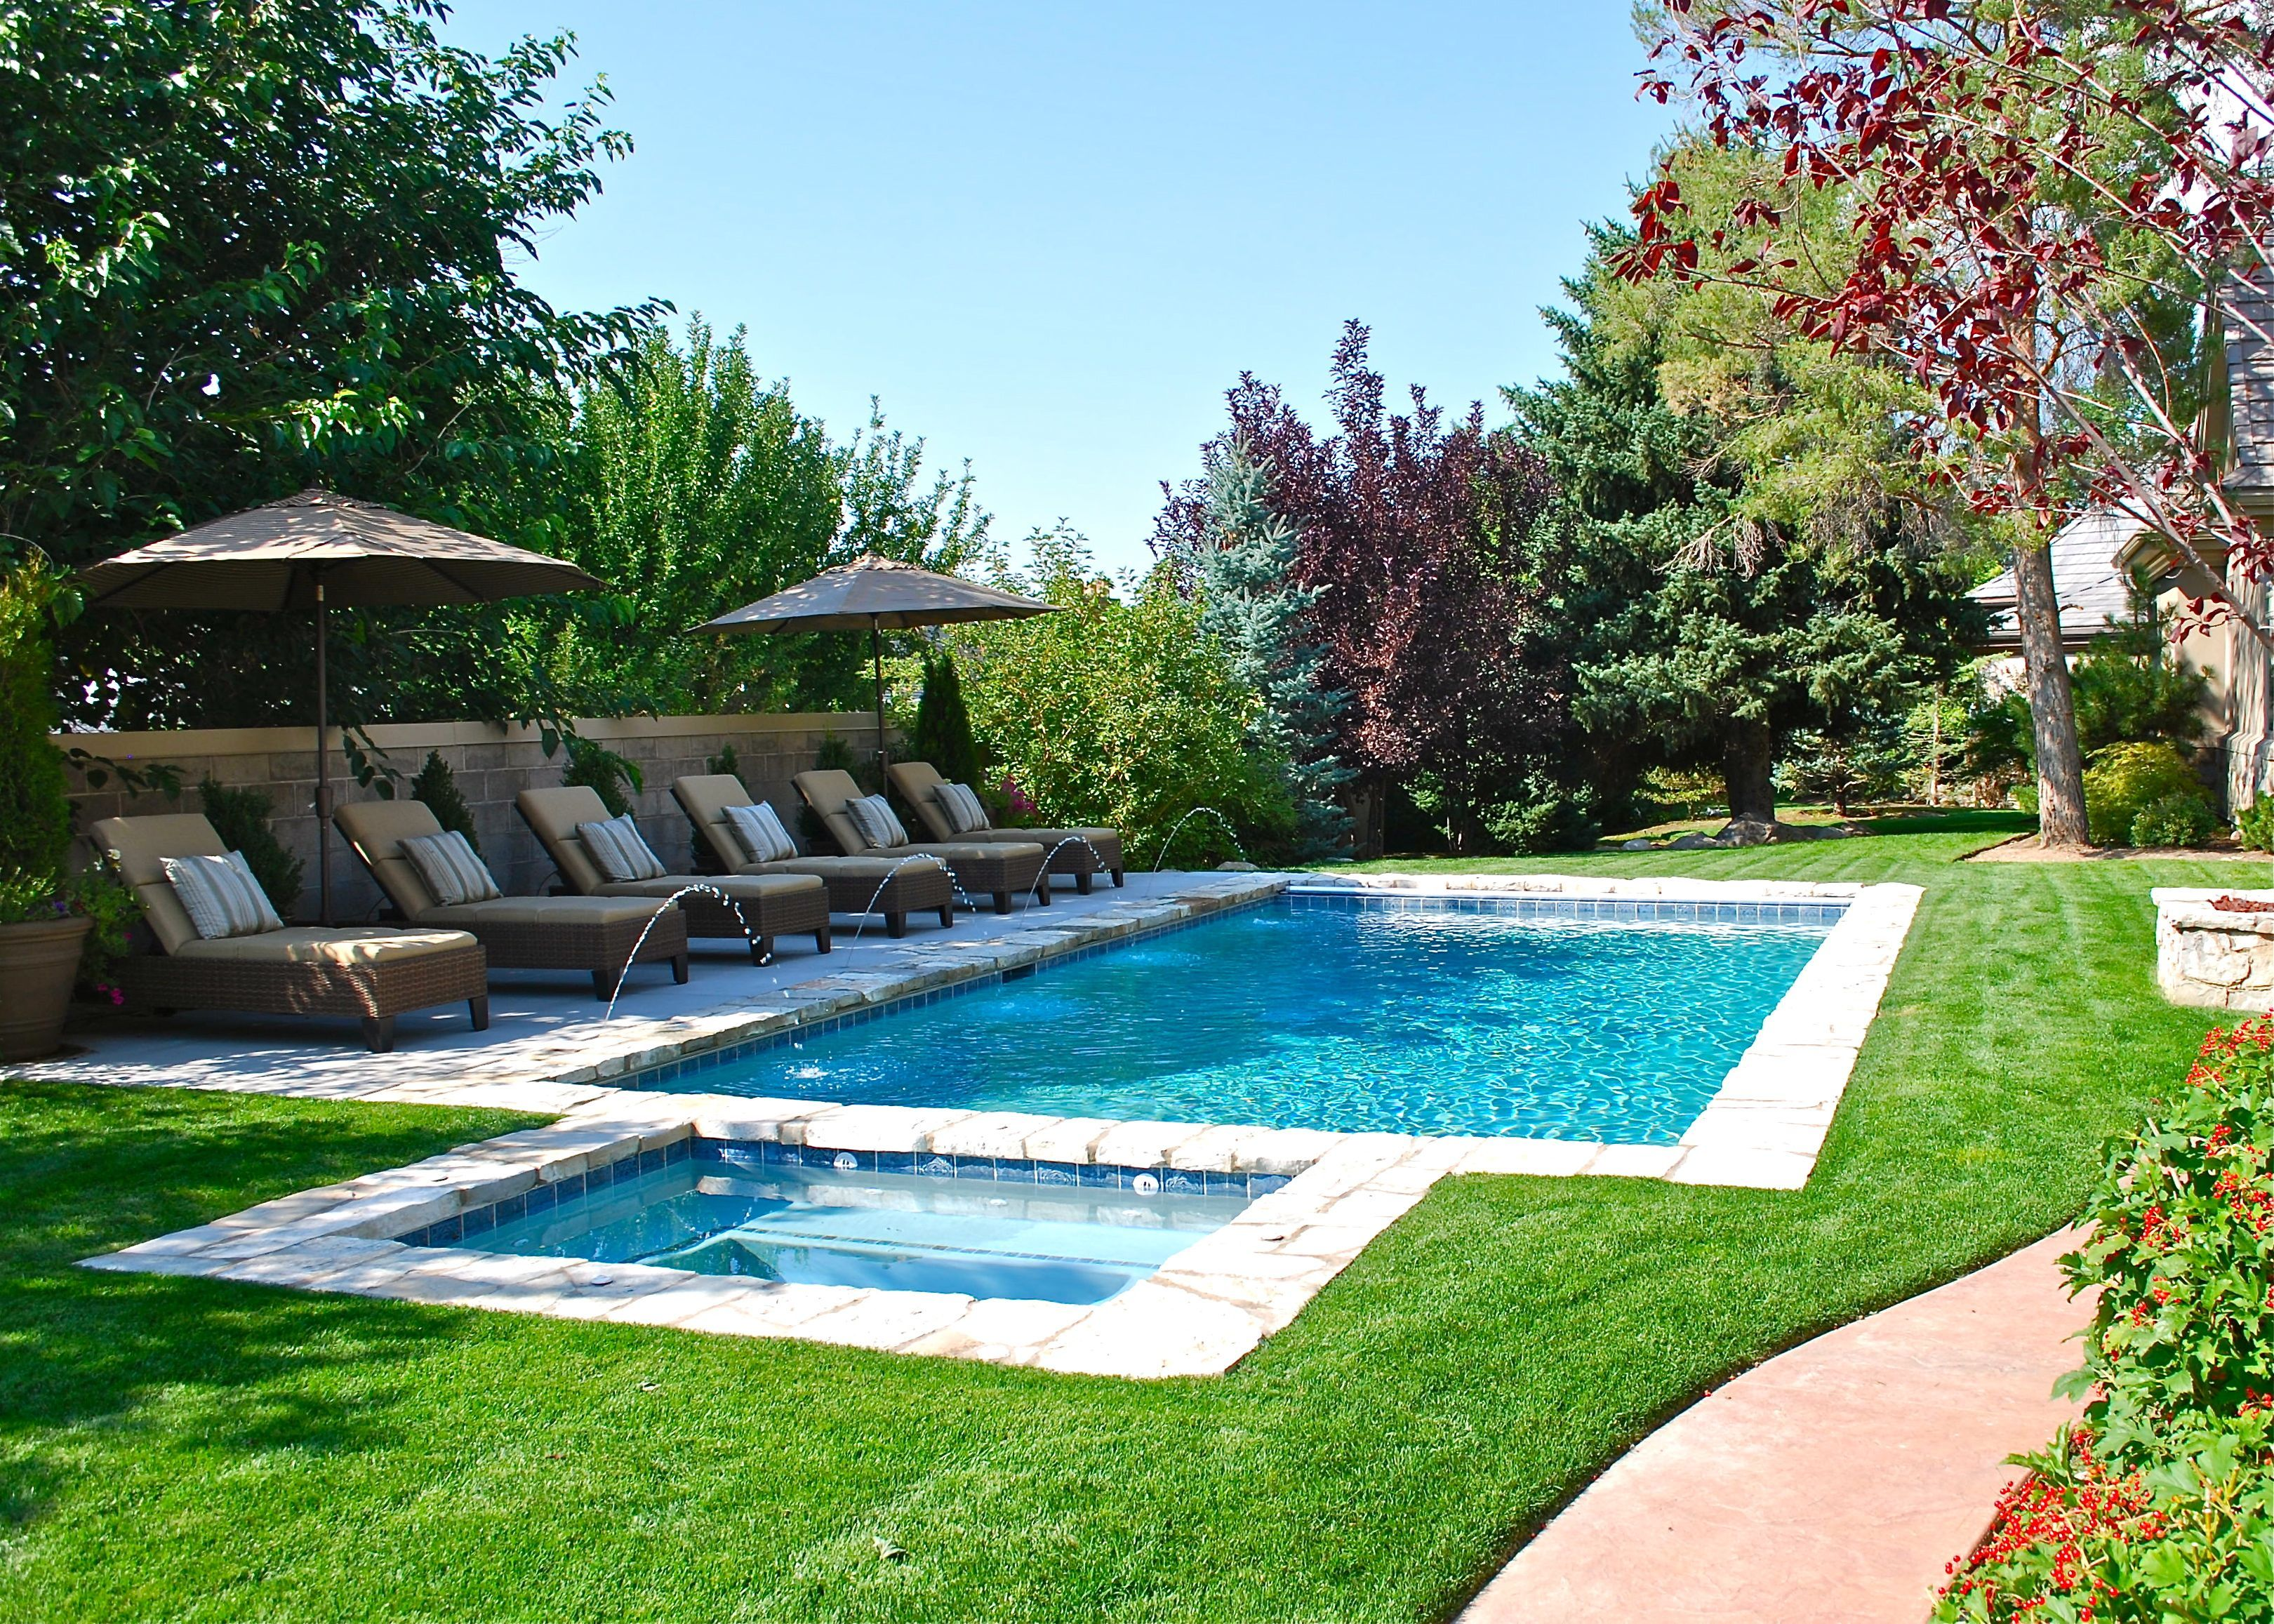 Backyard swimming pool with minimal decking deckjets and for Pool landscaping ideas